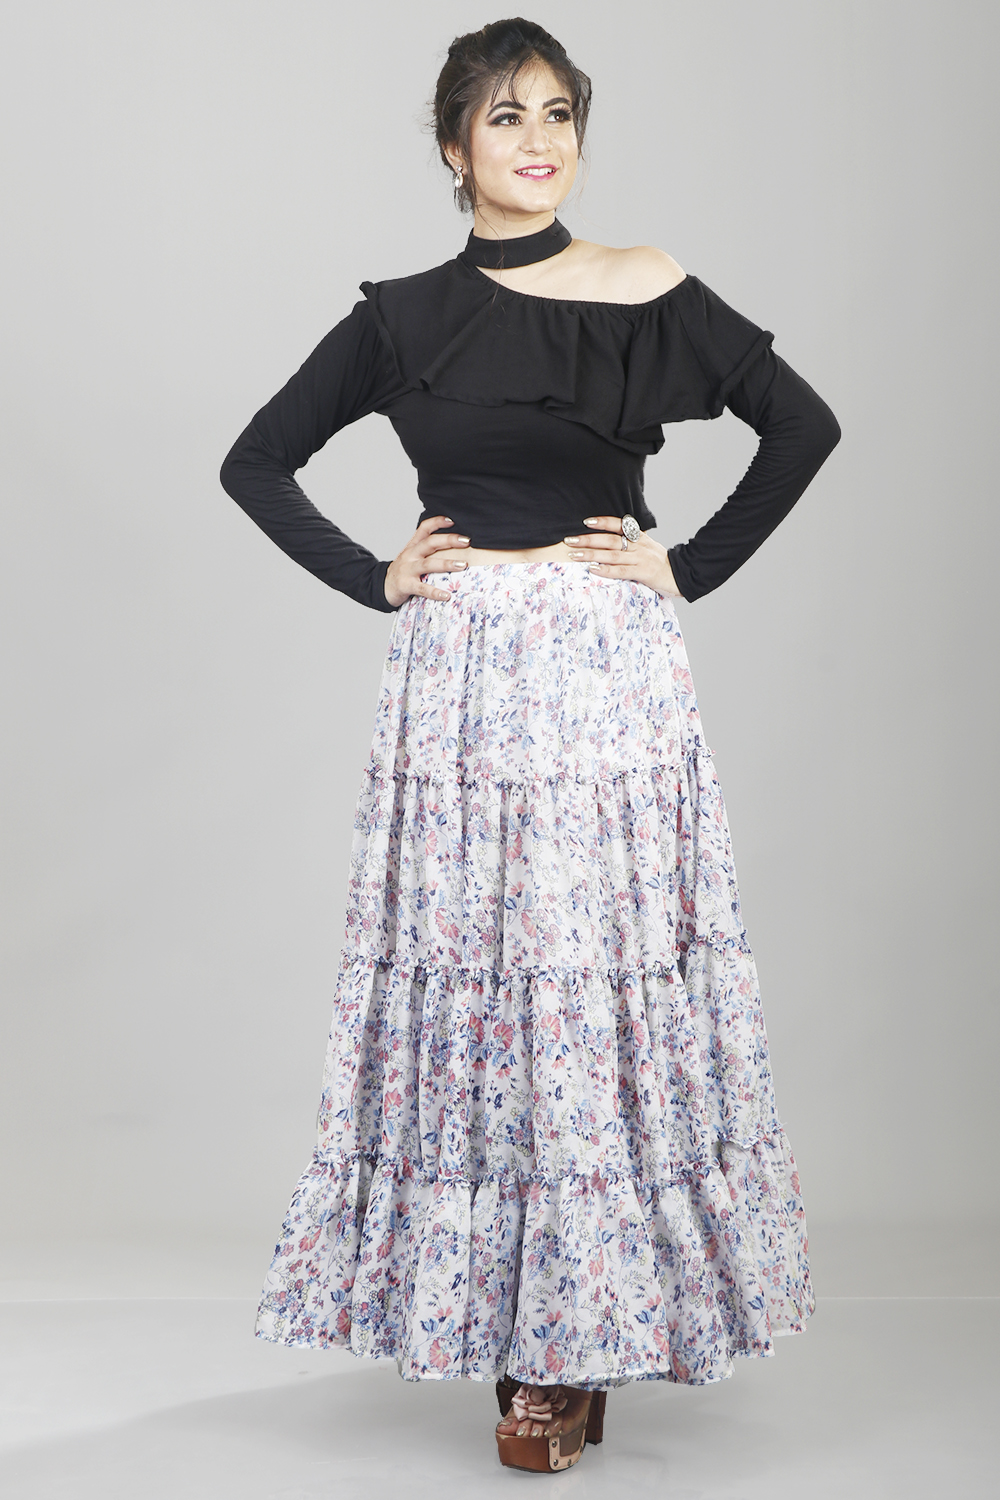 Printed Massive Flare Skirt With One Off-Shoulder Top